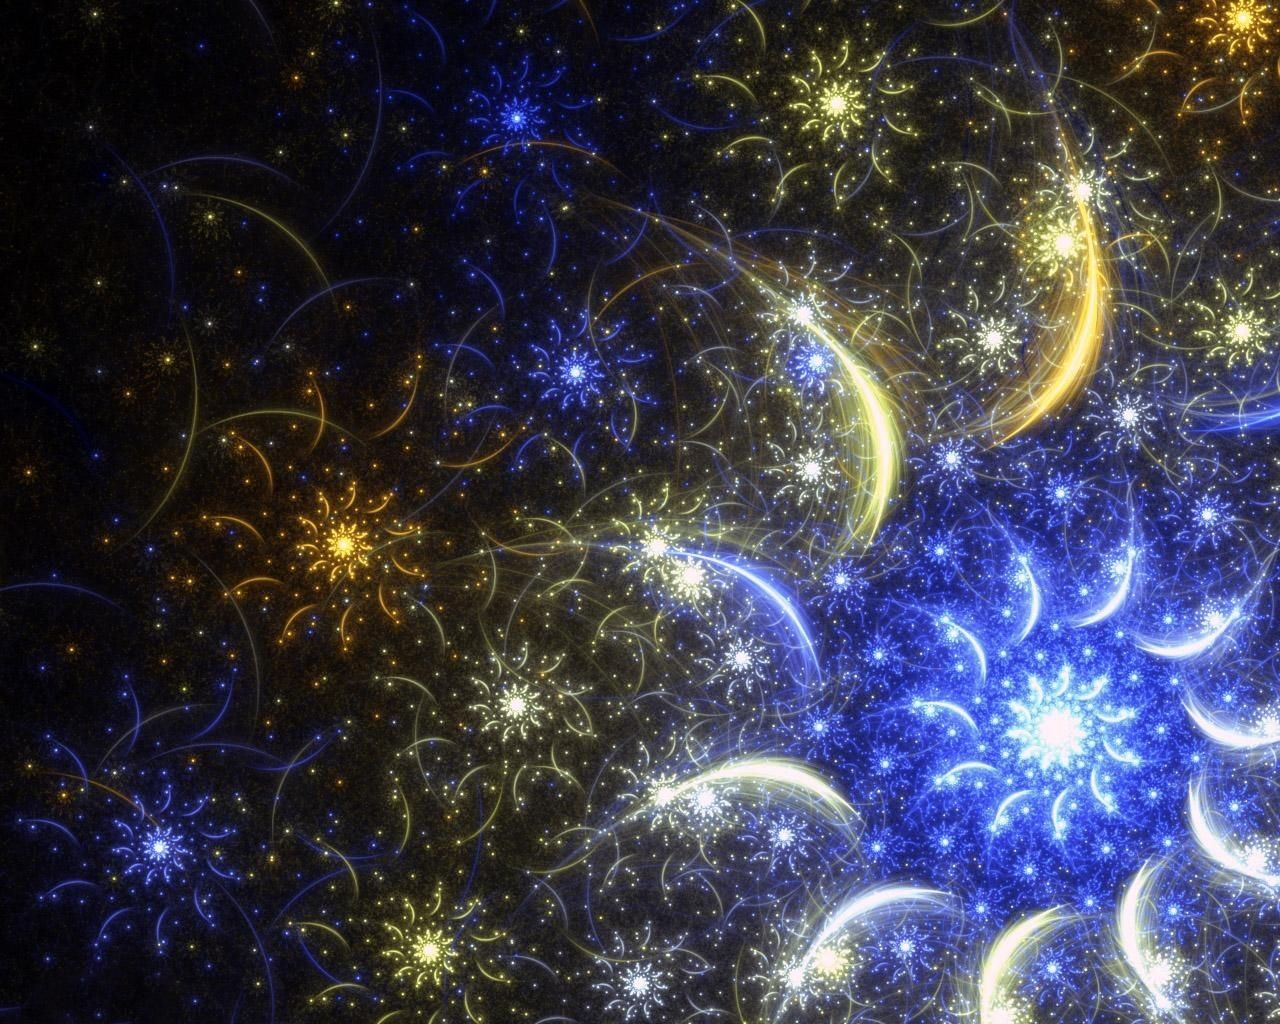 pin 1440x900 awesome fractal - photo #6